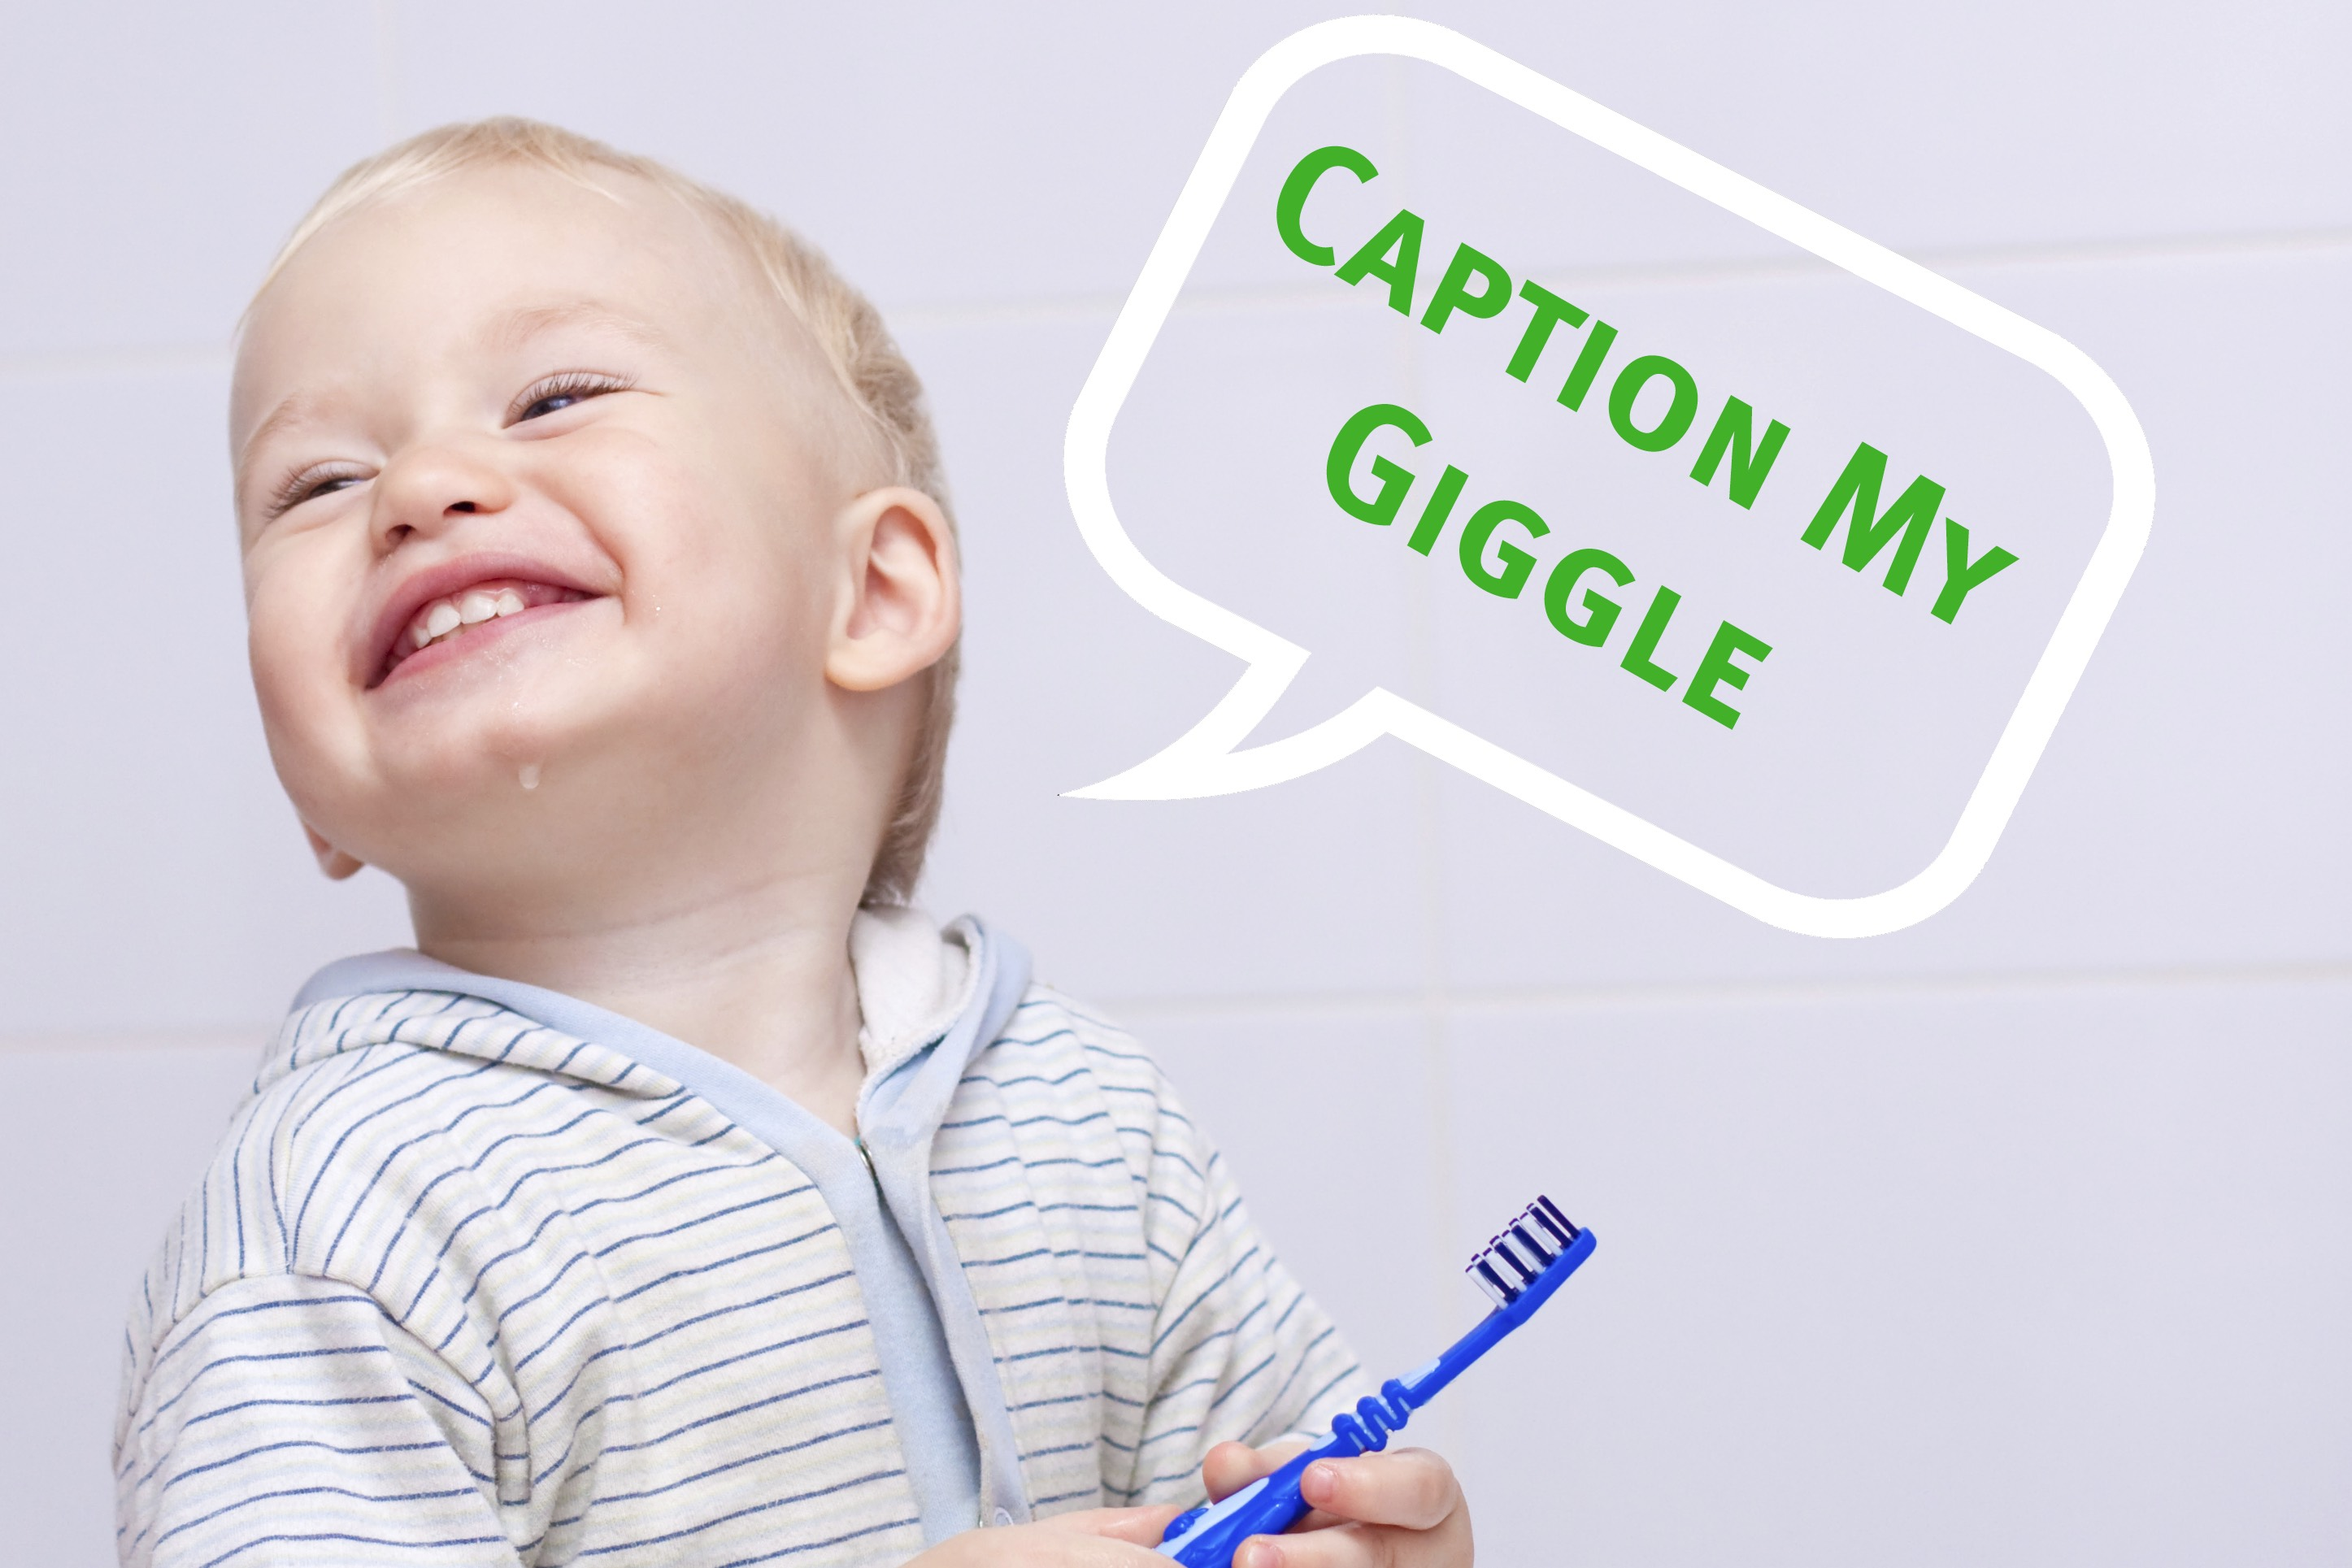 Giggle Giveaway: Show Your Funny Side for a Chance to Win